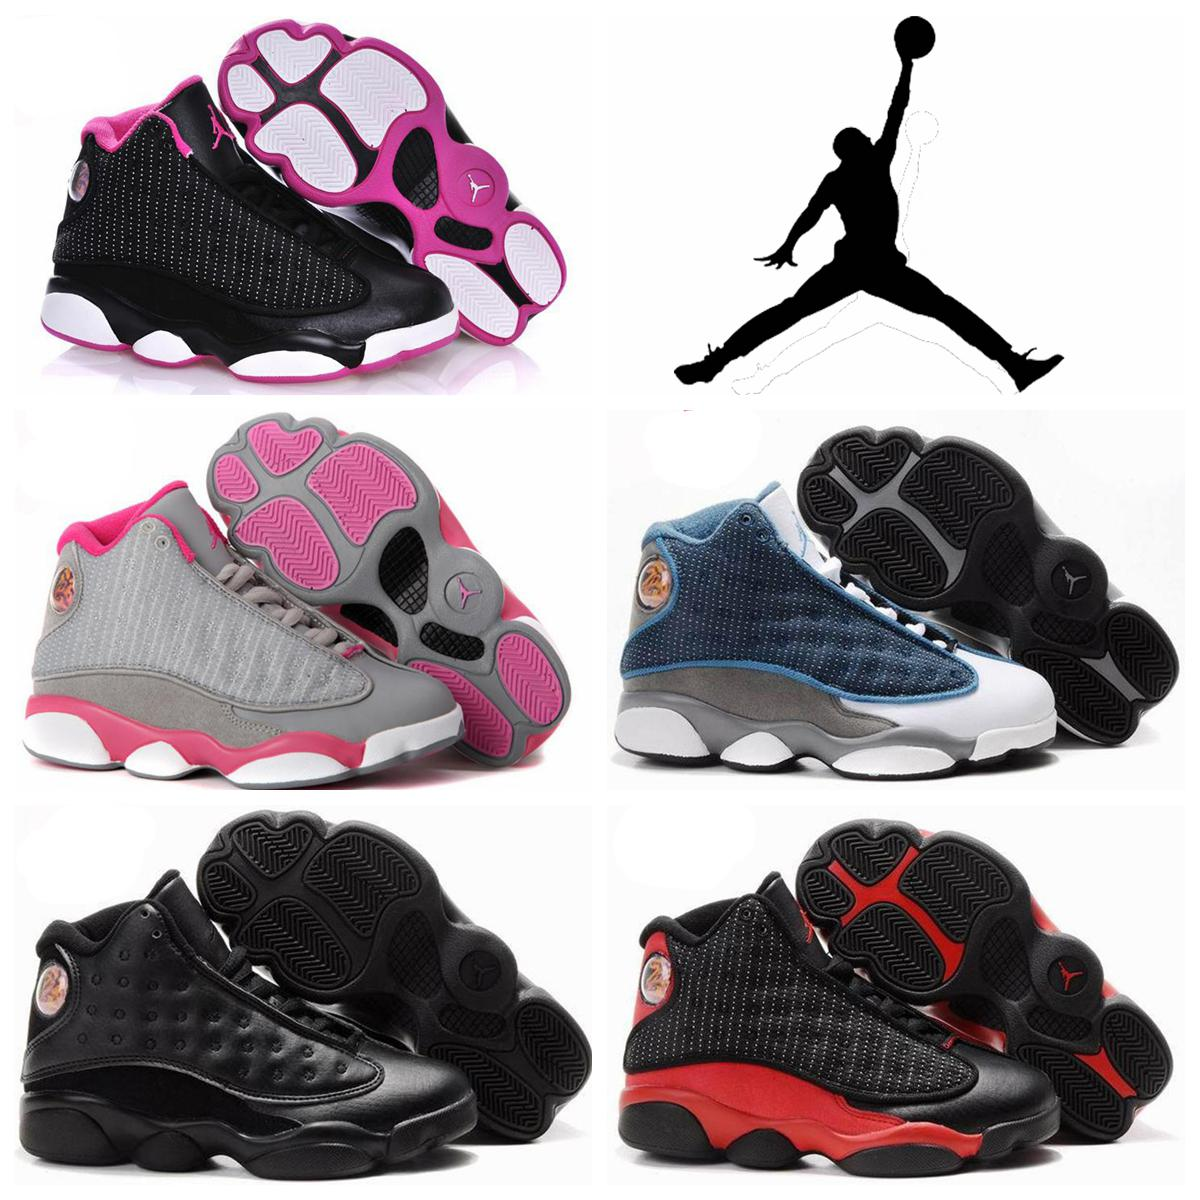 b6dba9ca117812 2016 New Nike Air Jordan 13 Xiii Retro Childrens Shoes Boys Girls  Basketball Shoes Kids High Quality Athletic Babys Trainers Cheap Size 11c Toddler  Boys ...